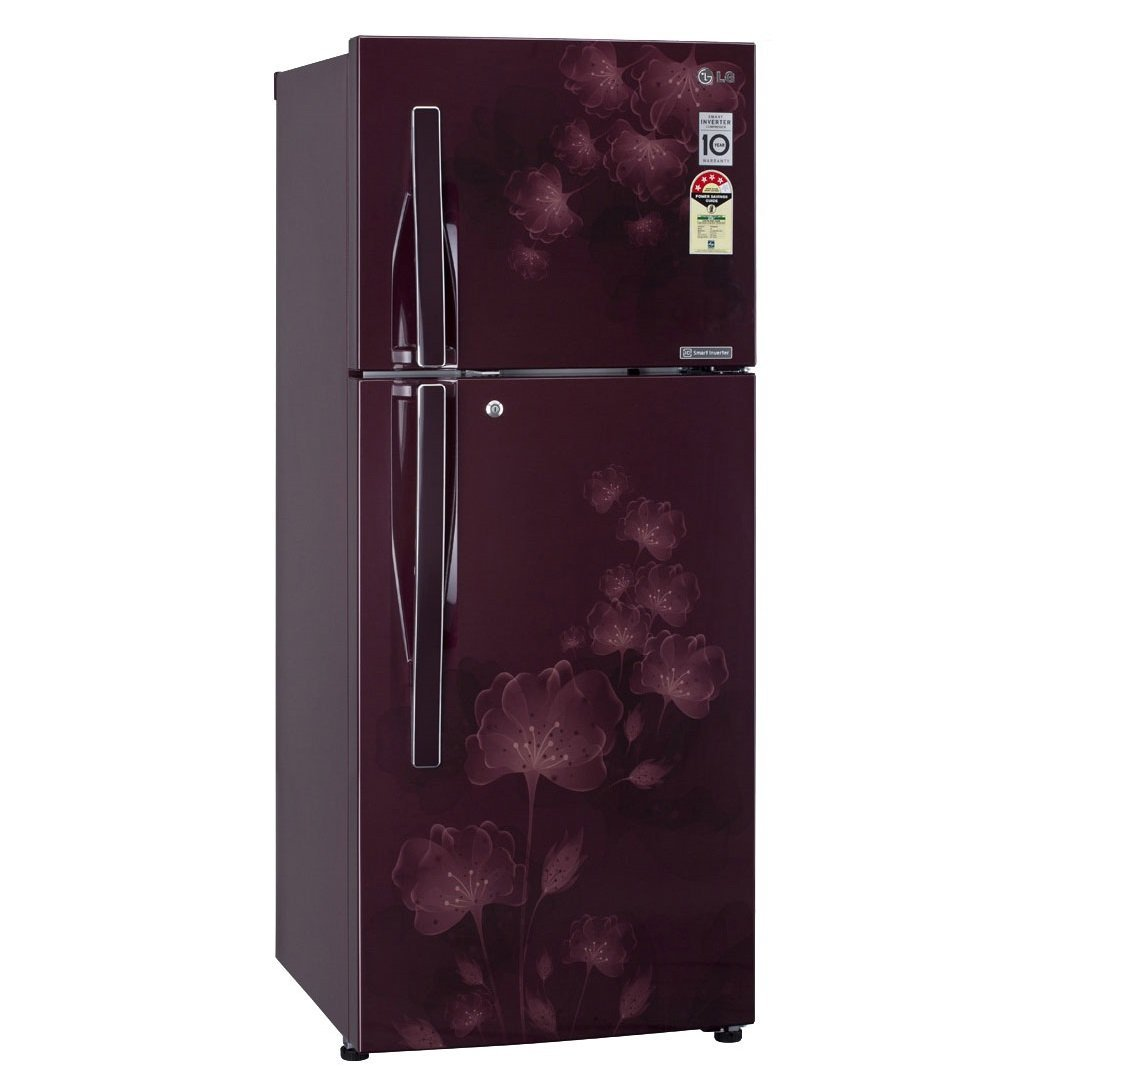 Lg Refrigerator Double Door Home Design